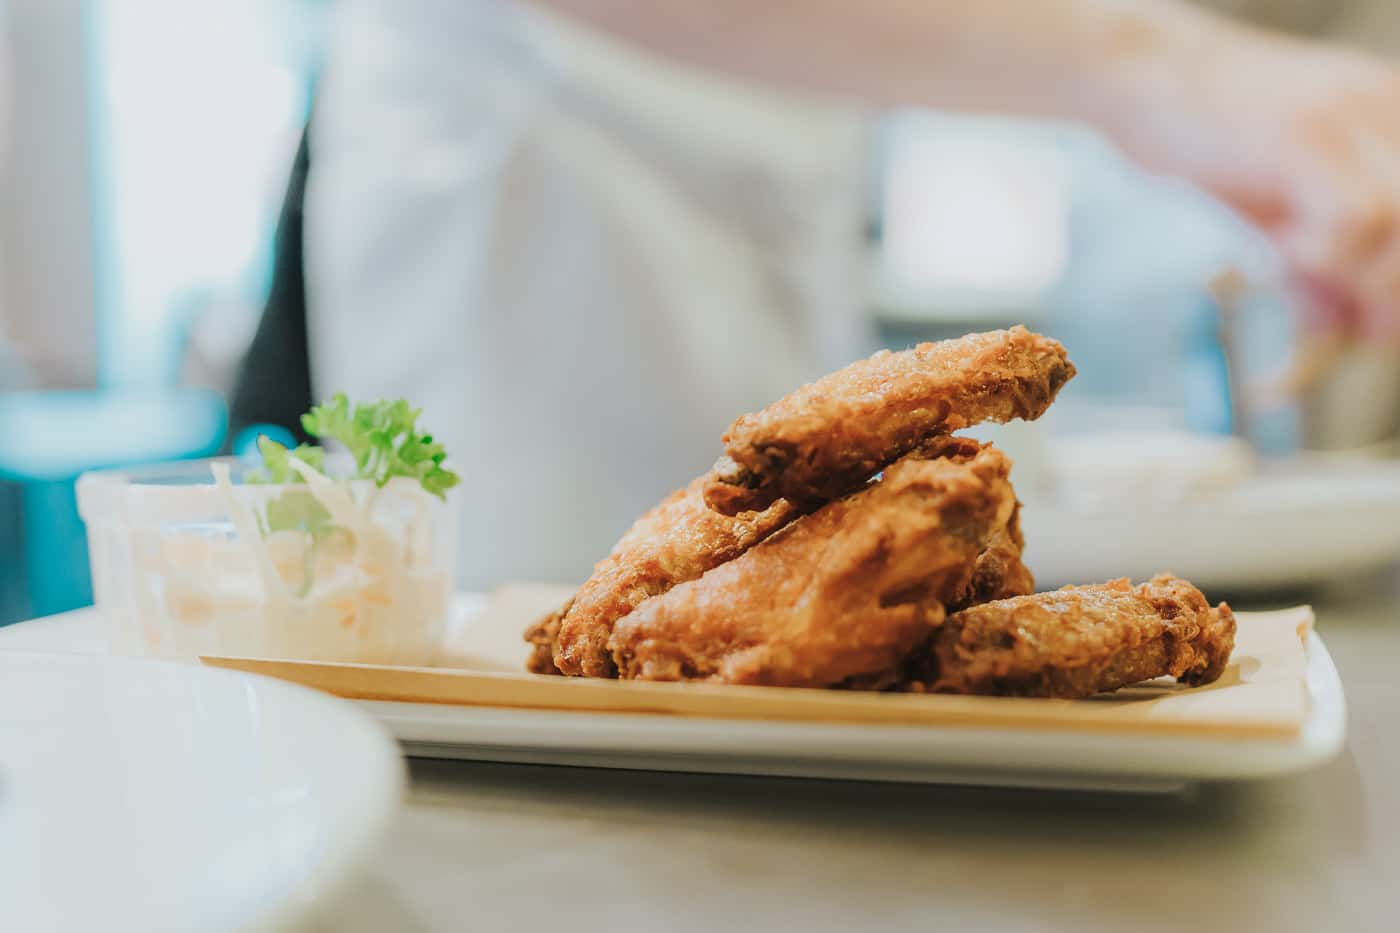 Deepfried chicken wings on a plate ready to be served